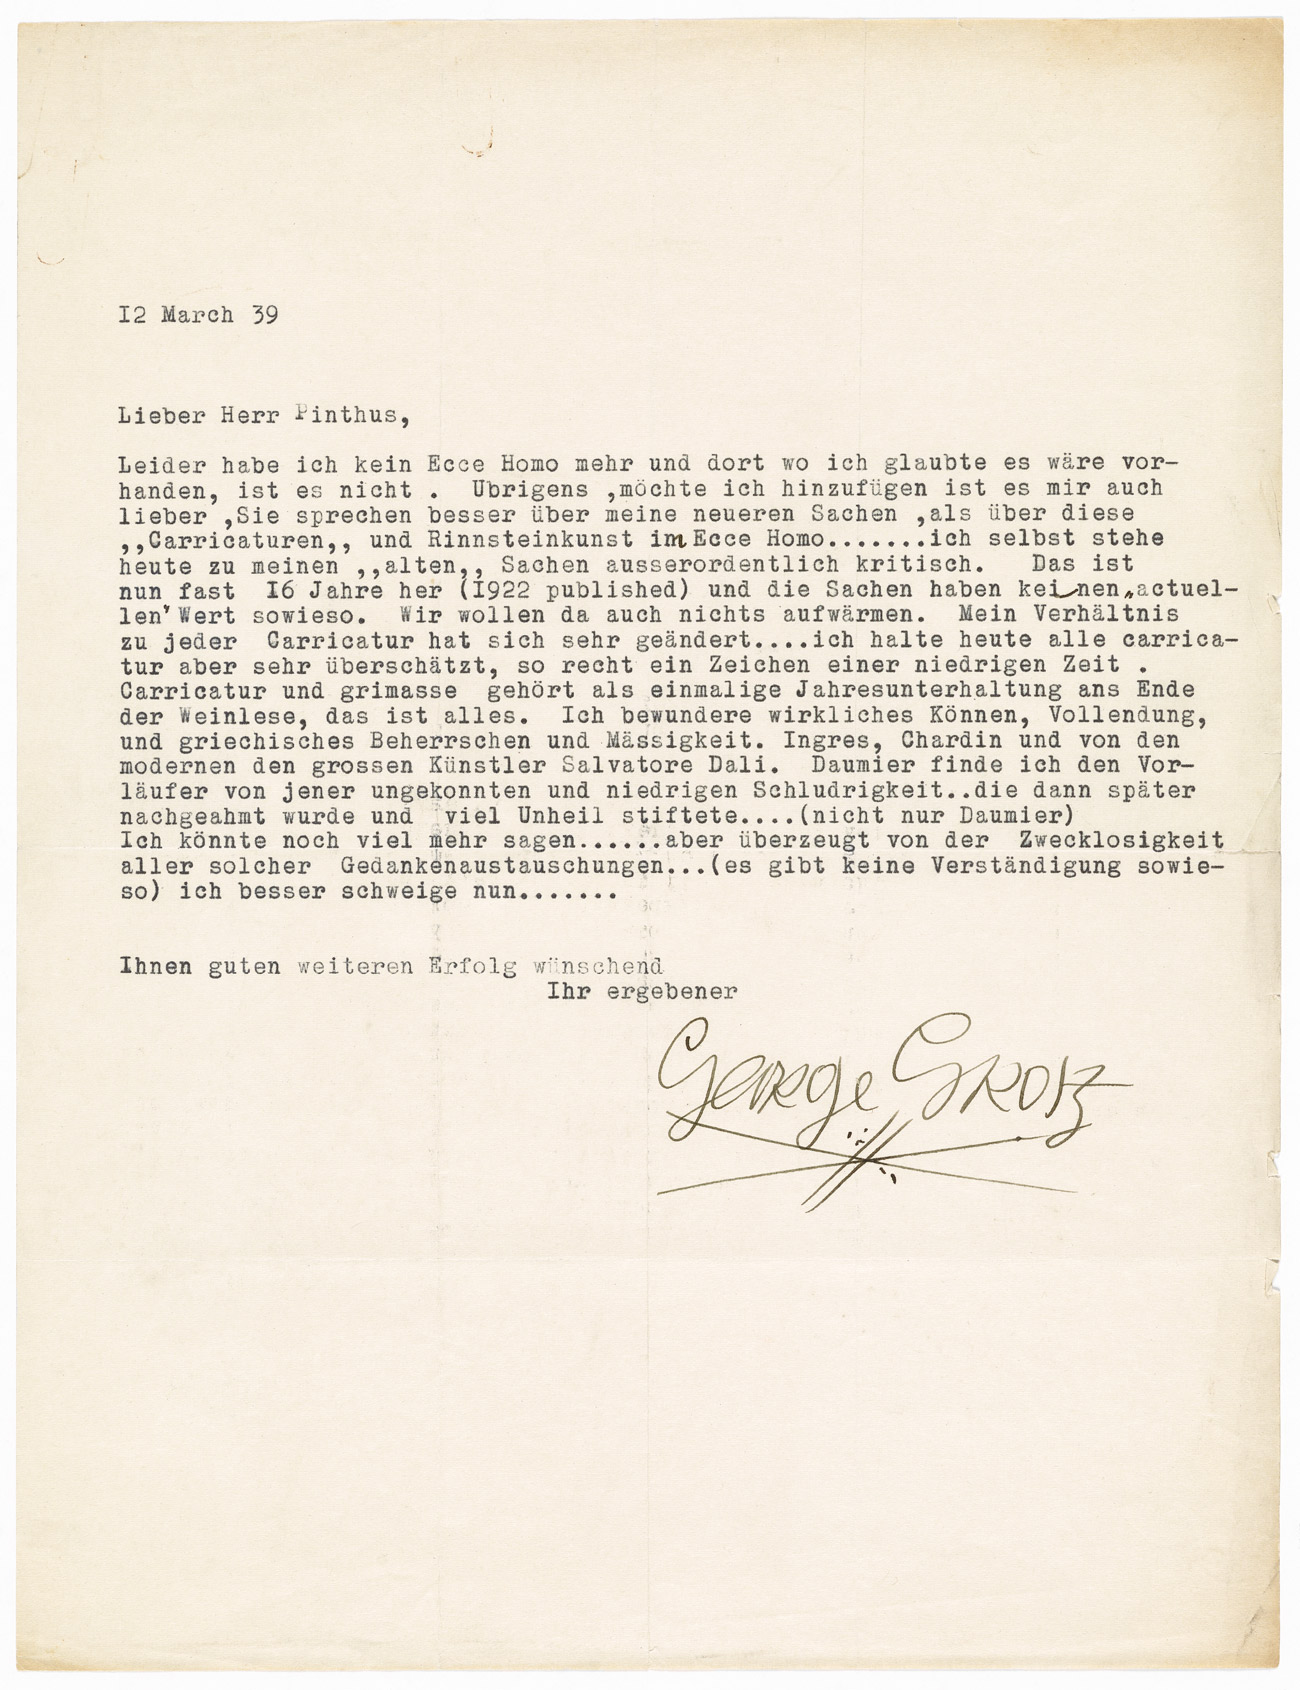 A letter typed in German and signed by George Grosz